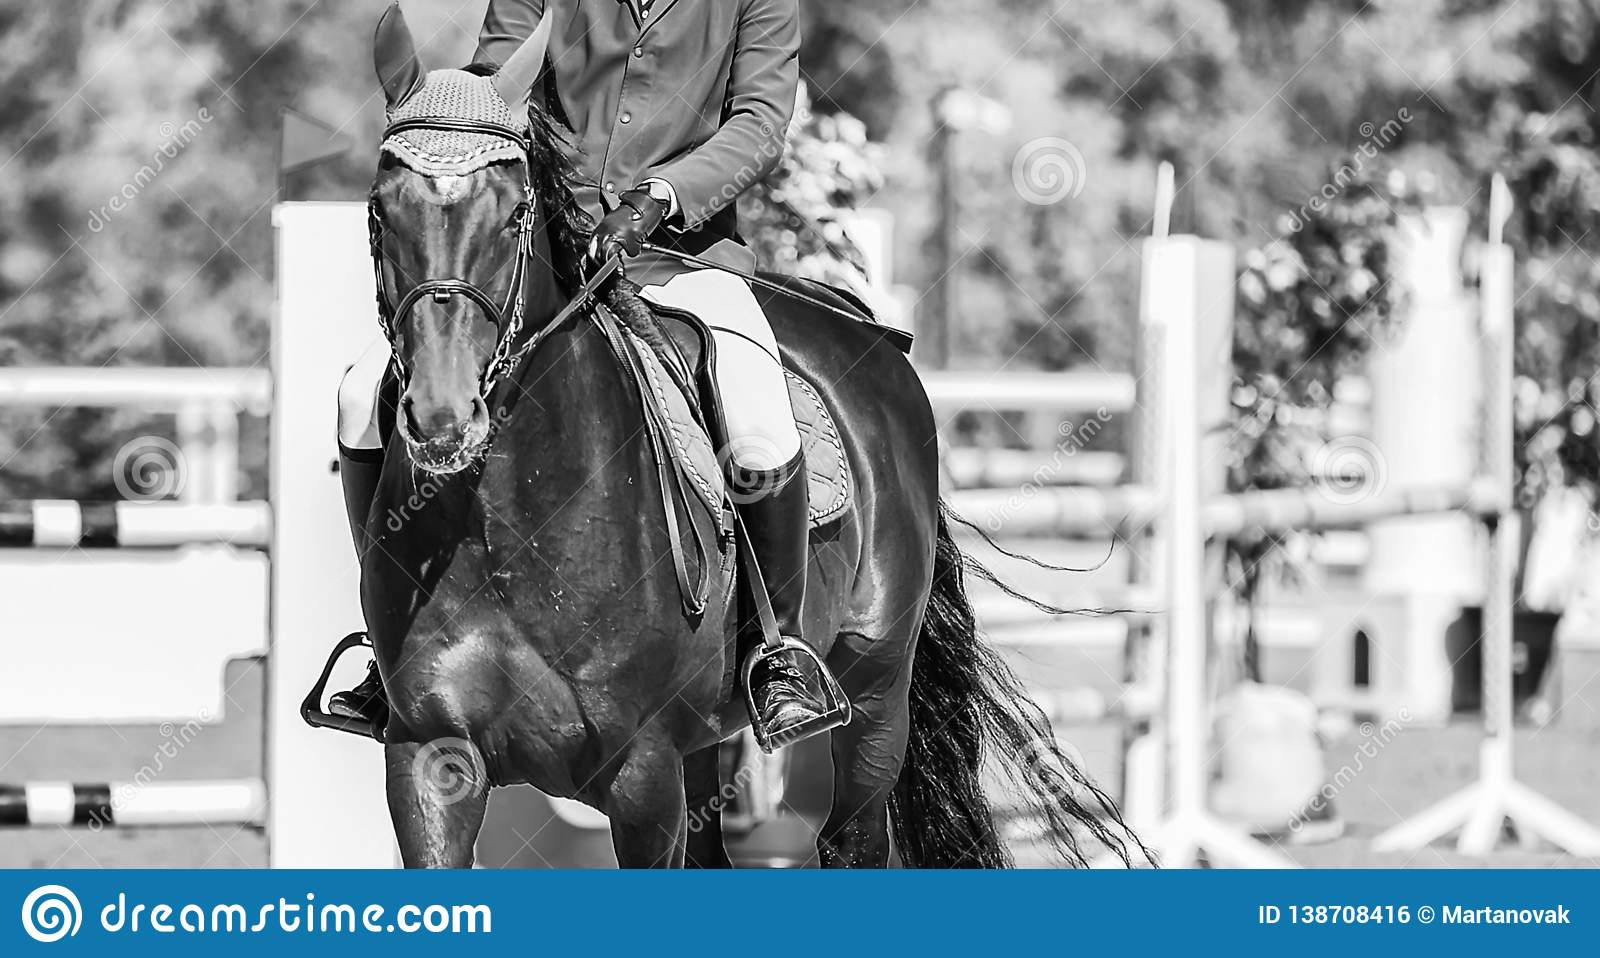 Horse Horizontal Black And White Banner For Website Header Poster Wallpaper Monochrome Design Stock Photo Image Of Jockey Human 138708416